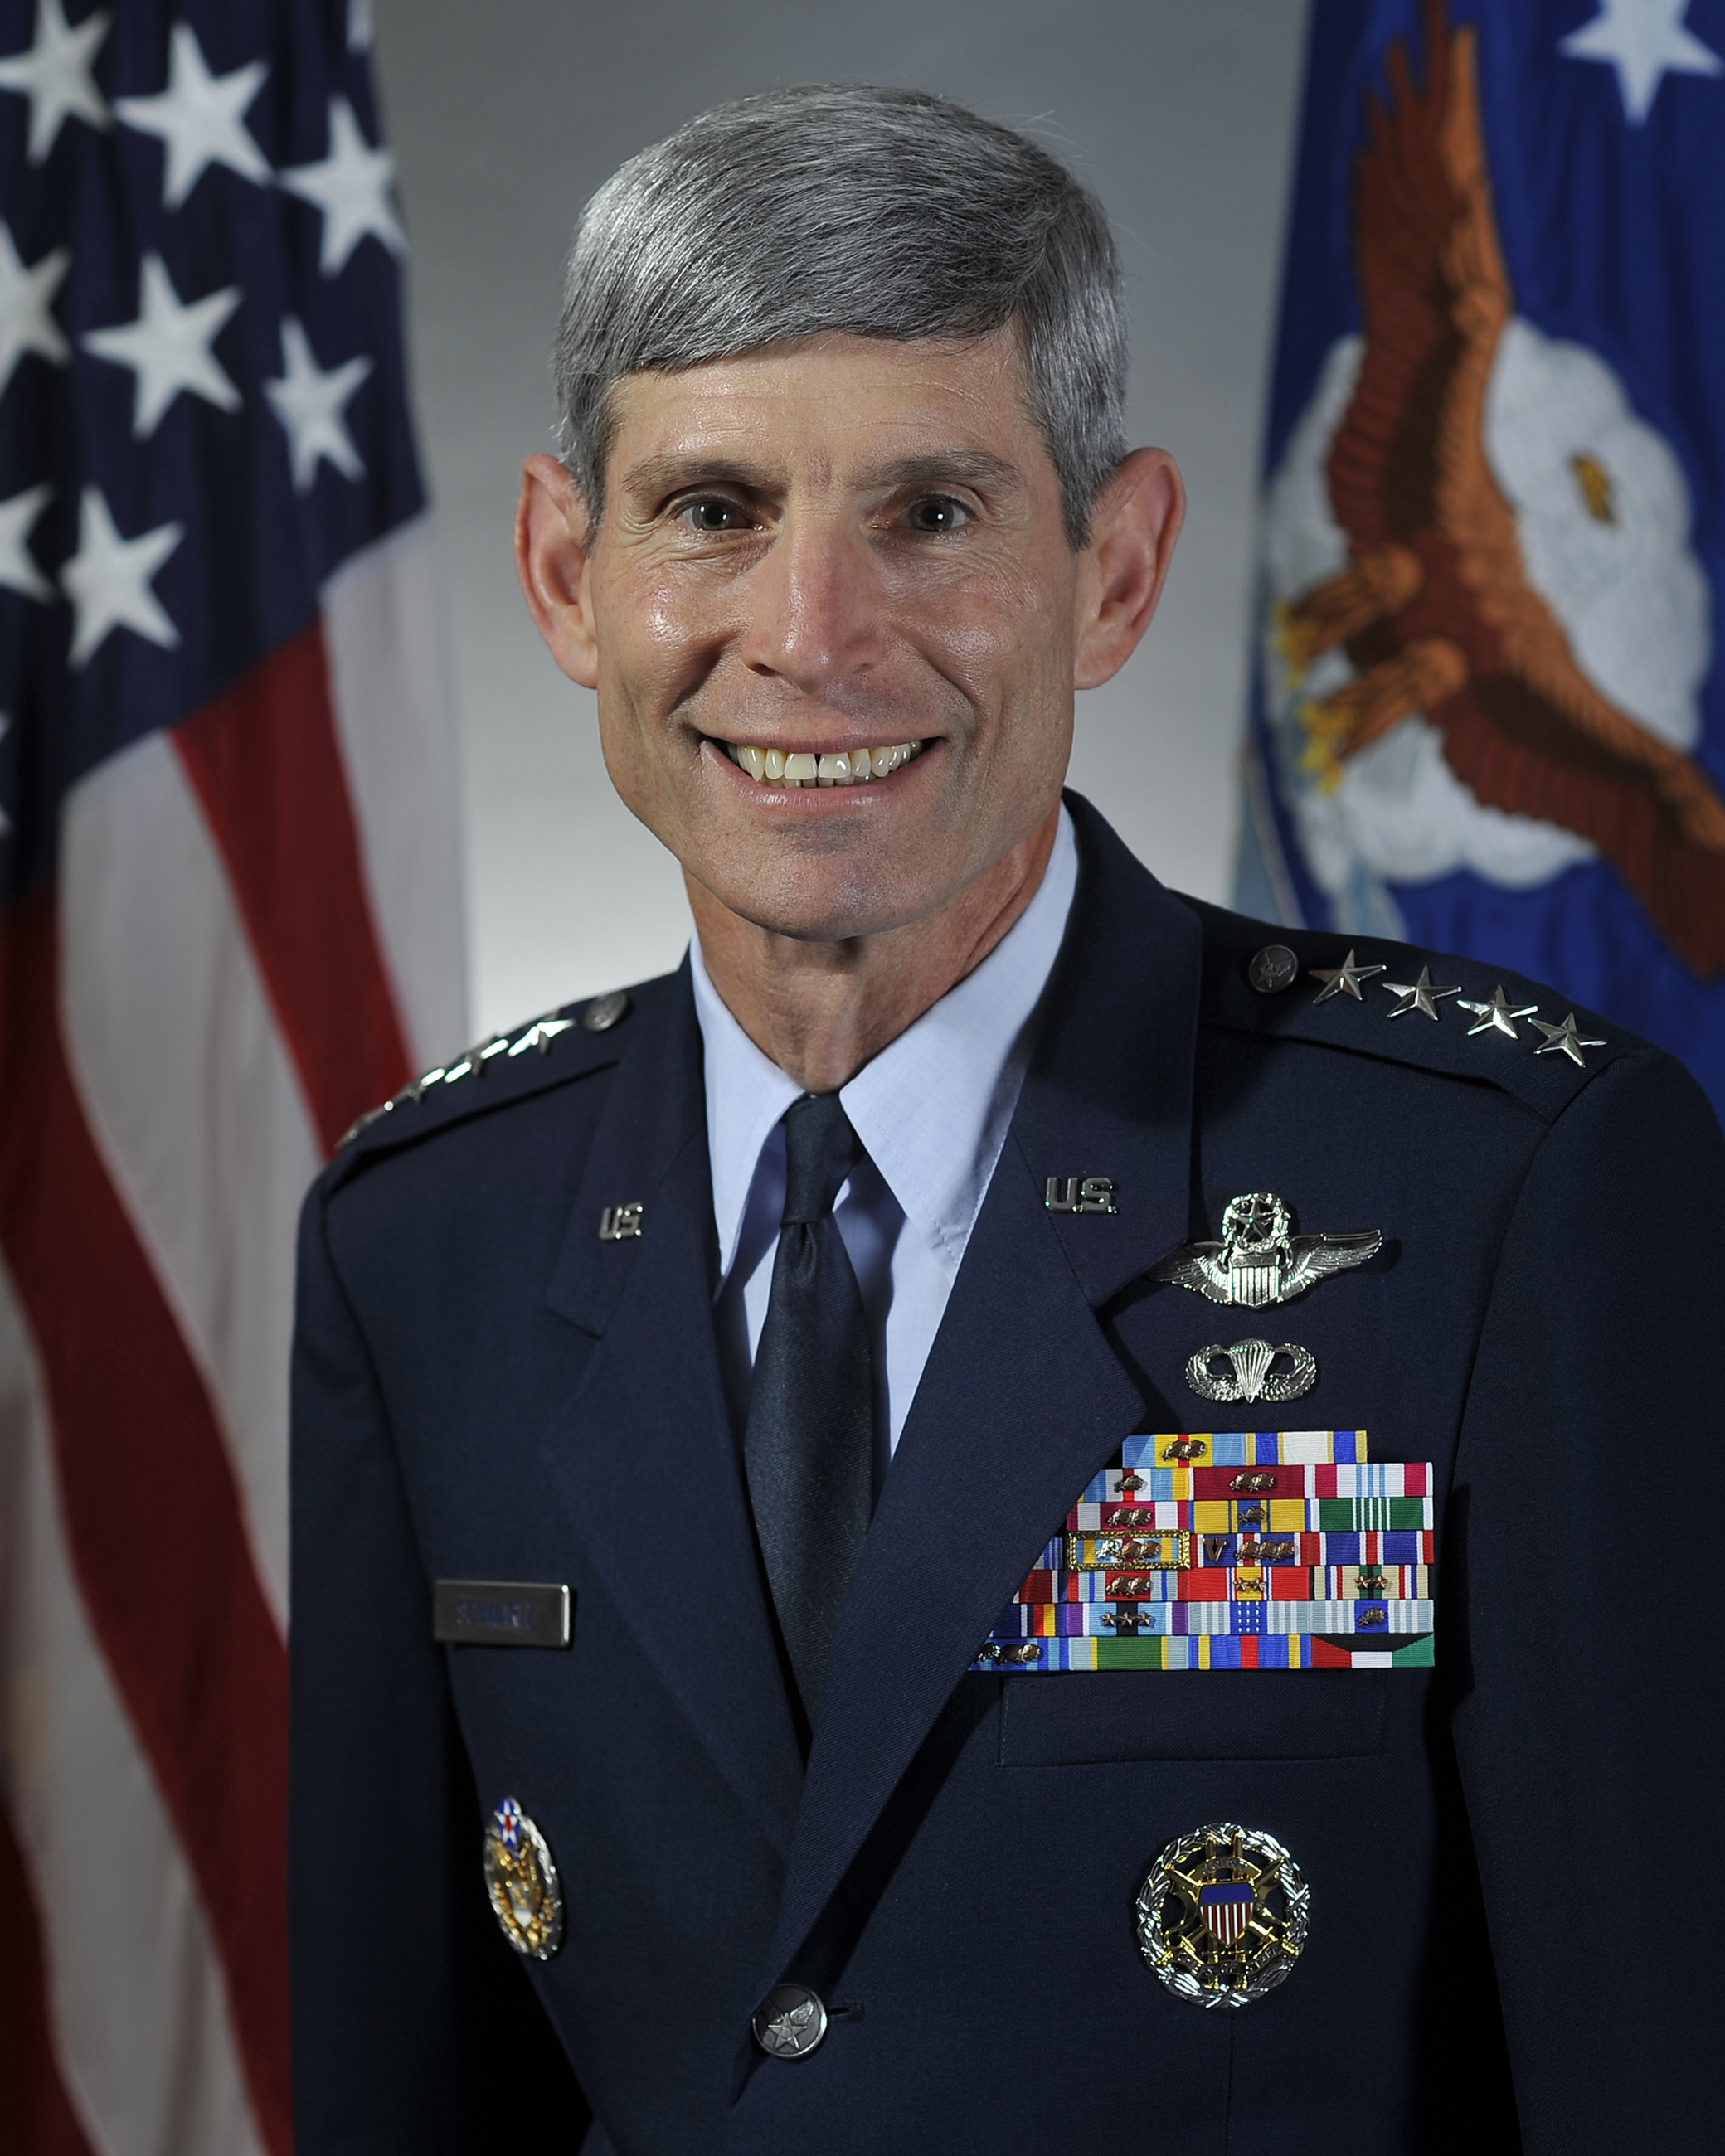 Biographies: GENERAL NORTON A. SCHWARTZ > U.S. Air Force > Biography